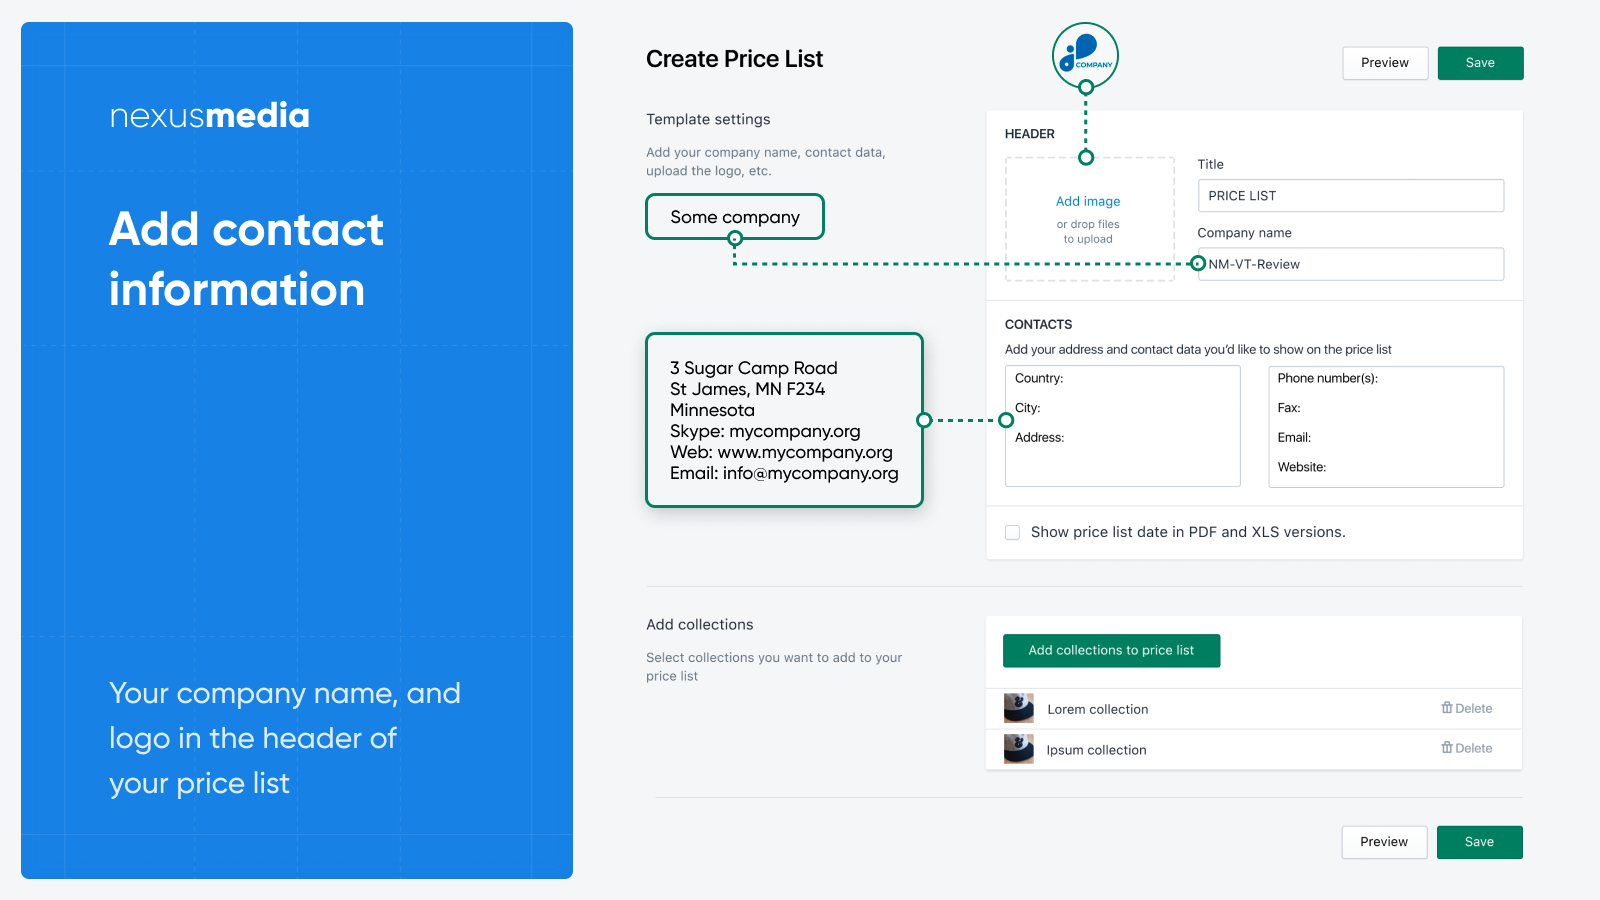 Add contact and company info to the price list